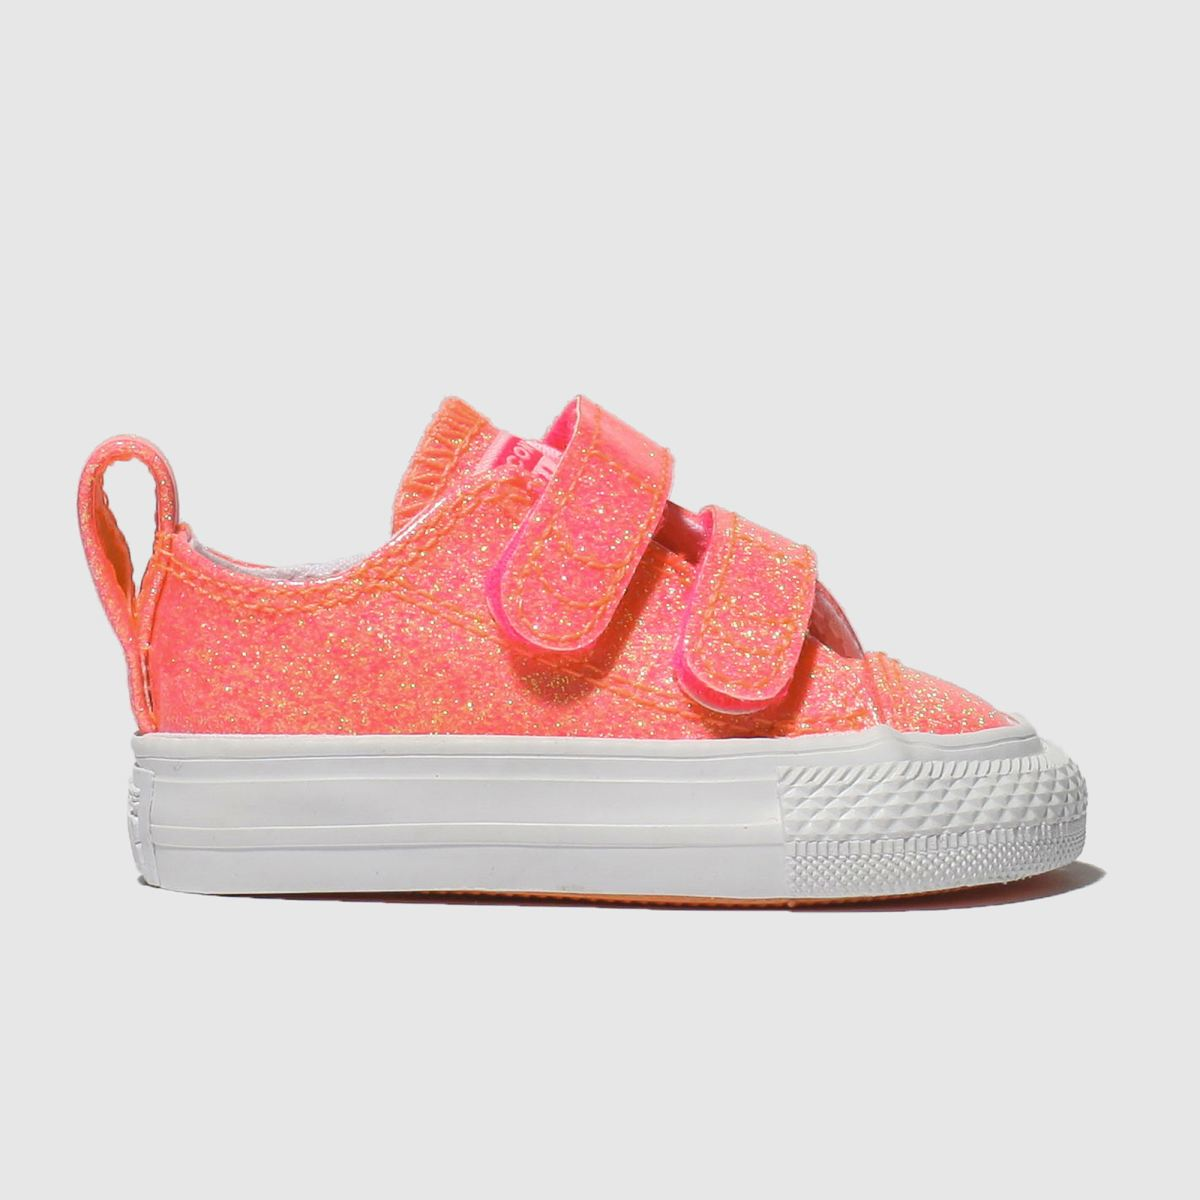 fb5c88a9c846 Girls pink converse chuck taylor all star 2v lo trainers